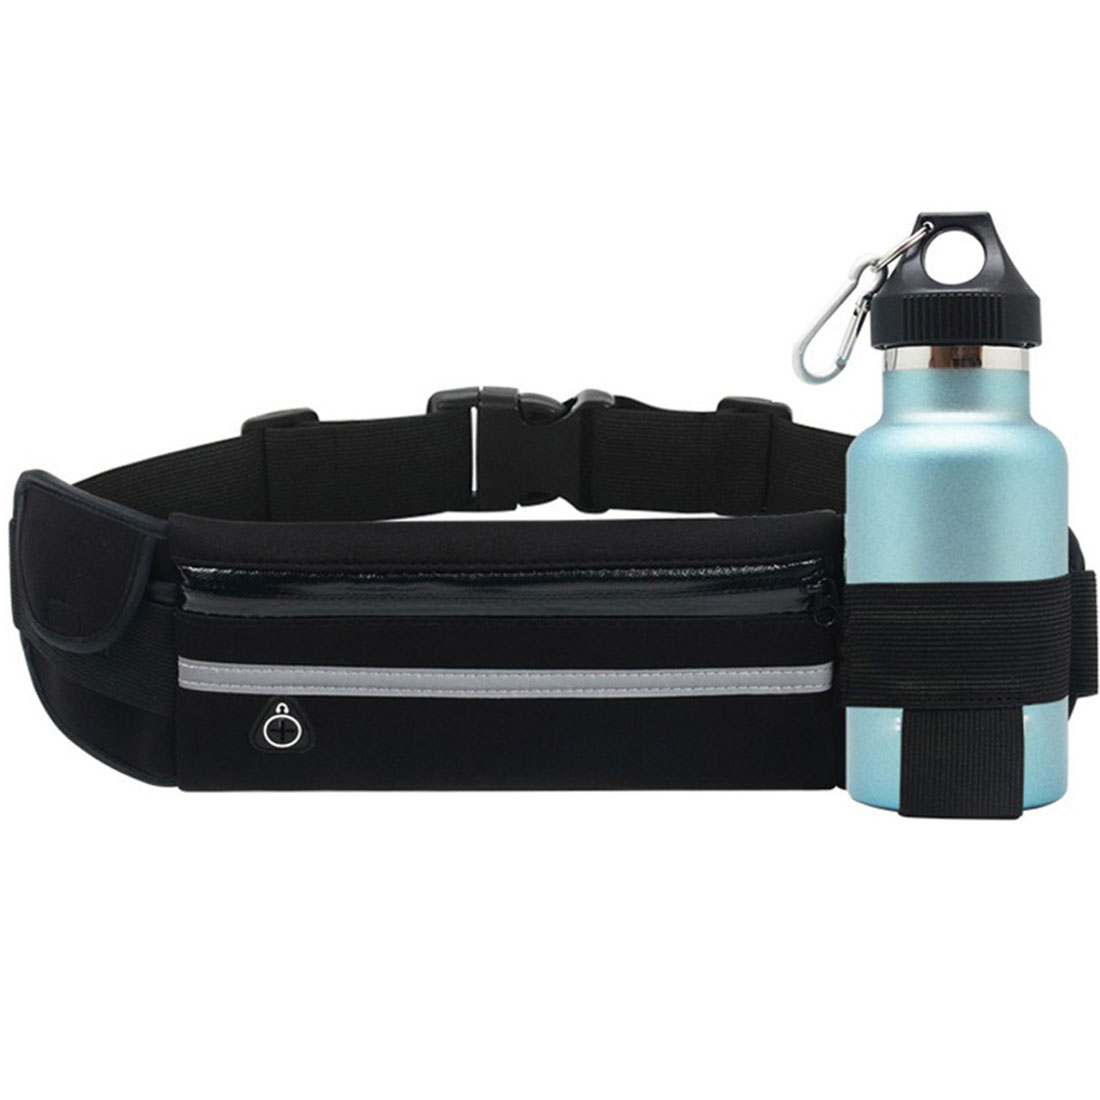 New Running Waist Bag Waterproof Phone Container Jogging Hiking Belt Belly Bag Women Gym Fitness Bag Lady Sport Accessories 16